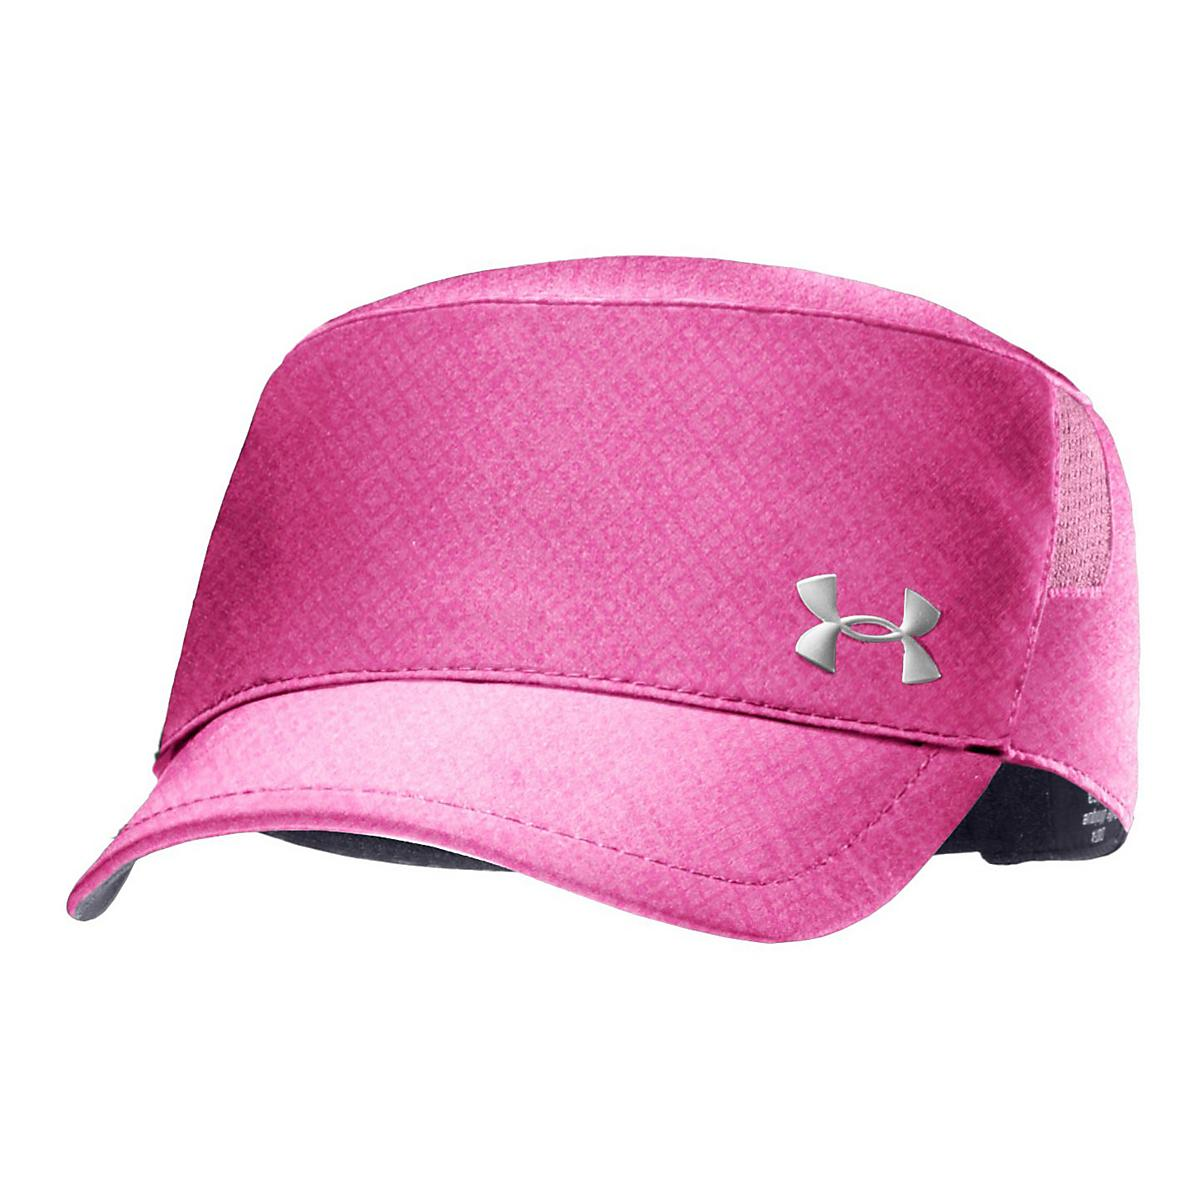 Womens Under Armour UA Embossed Military Cap Headwear at Road Runner Sports 9d3e5a6a4fd